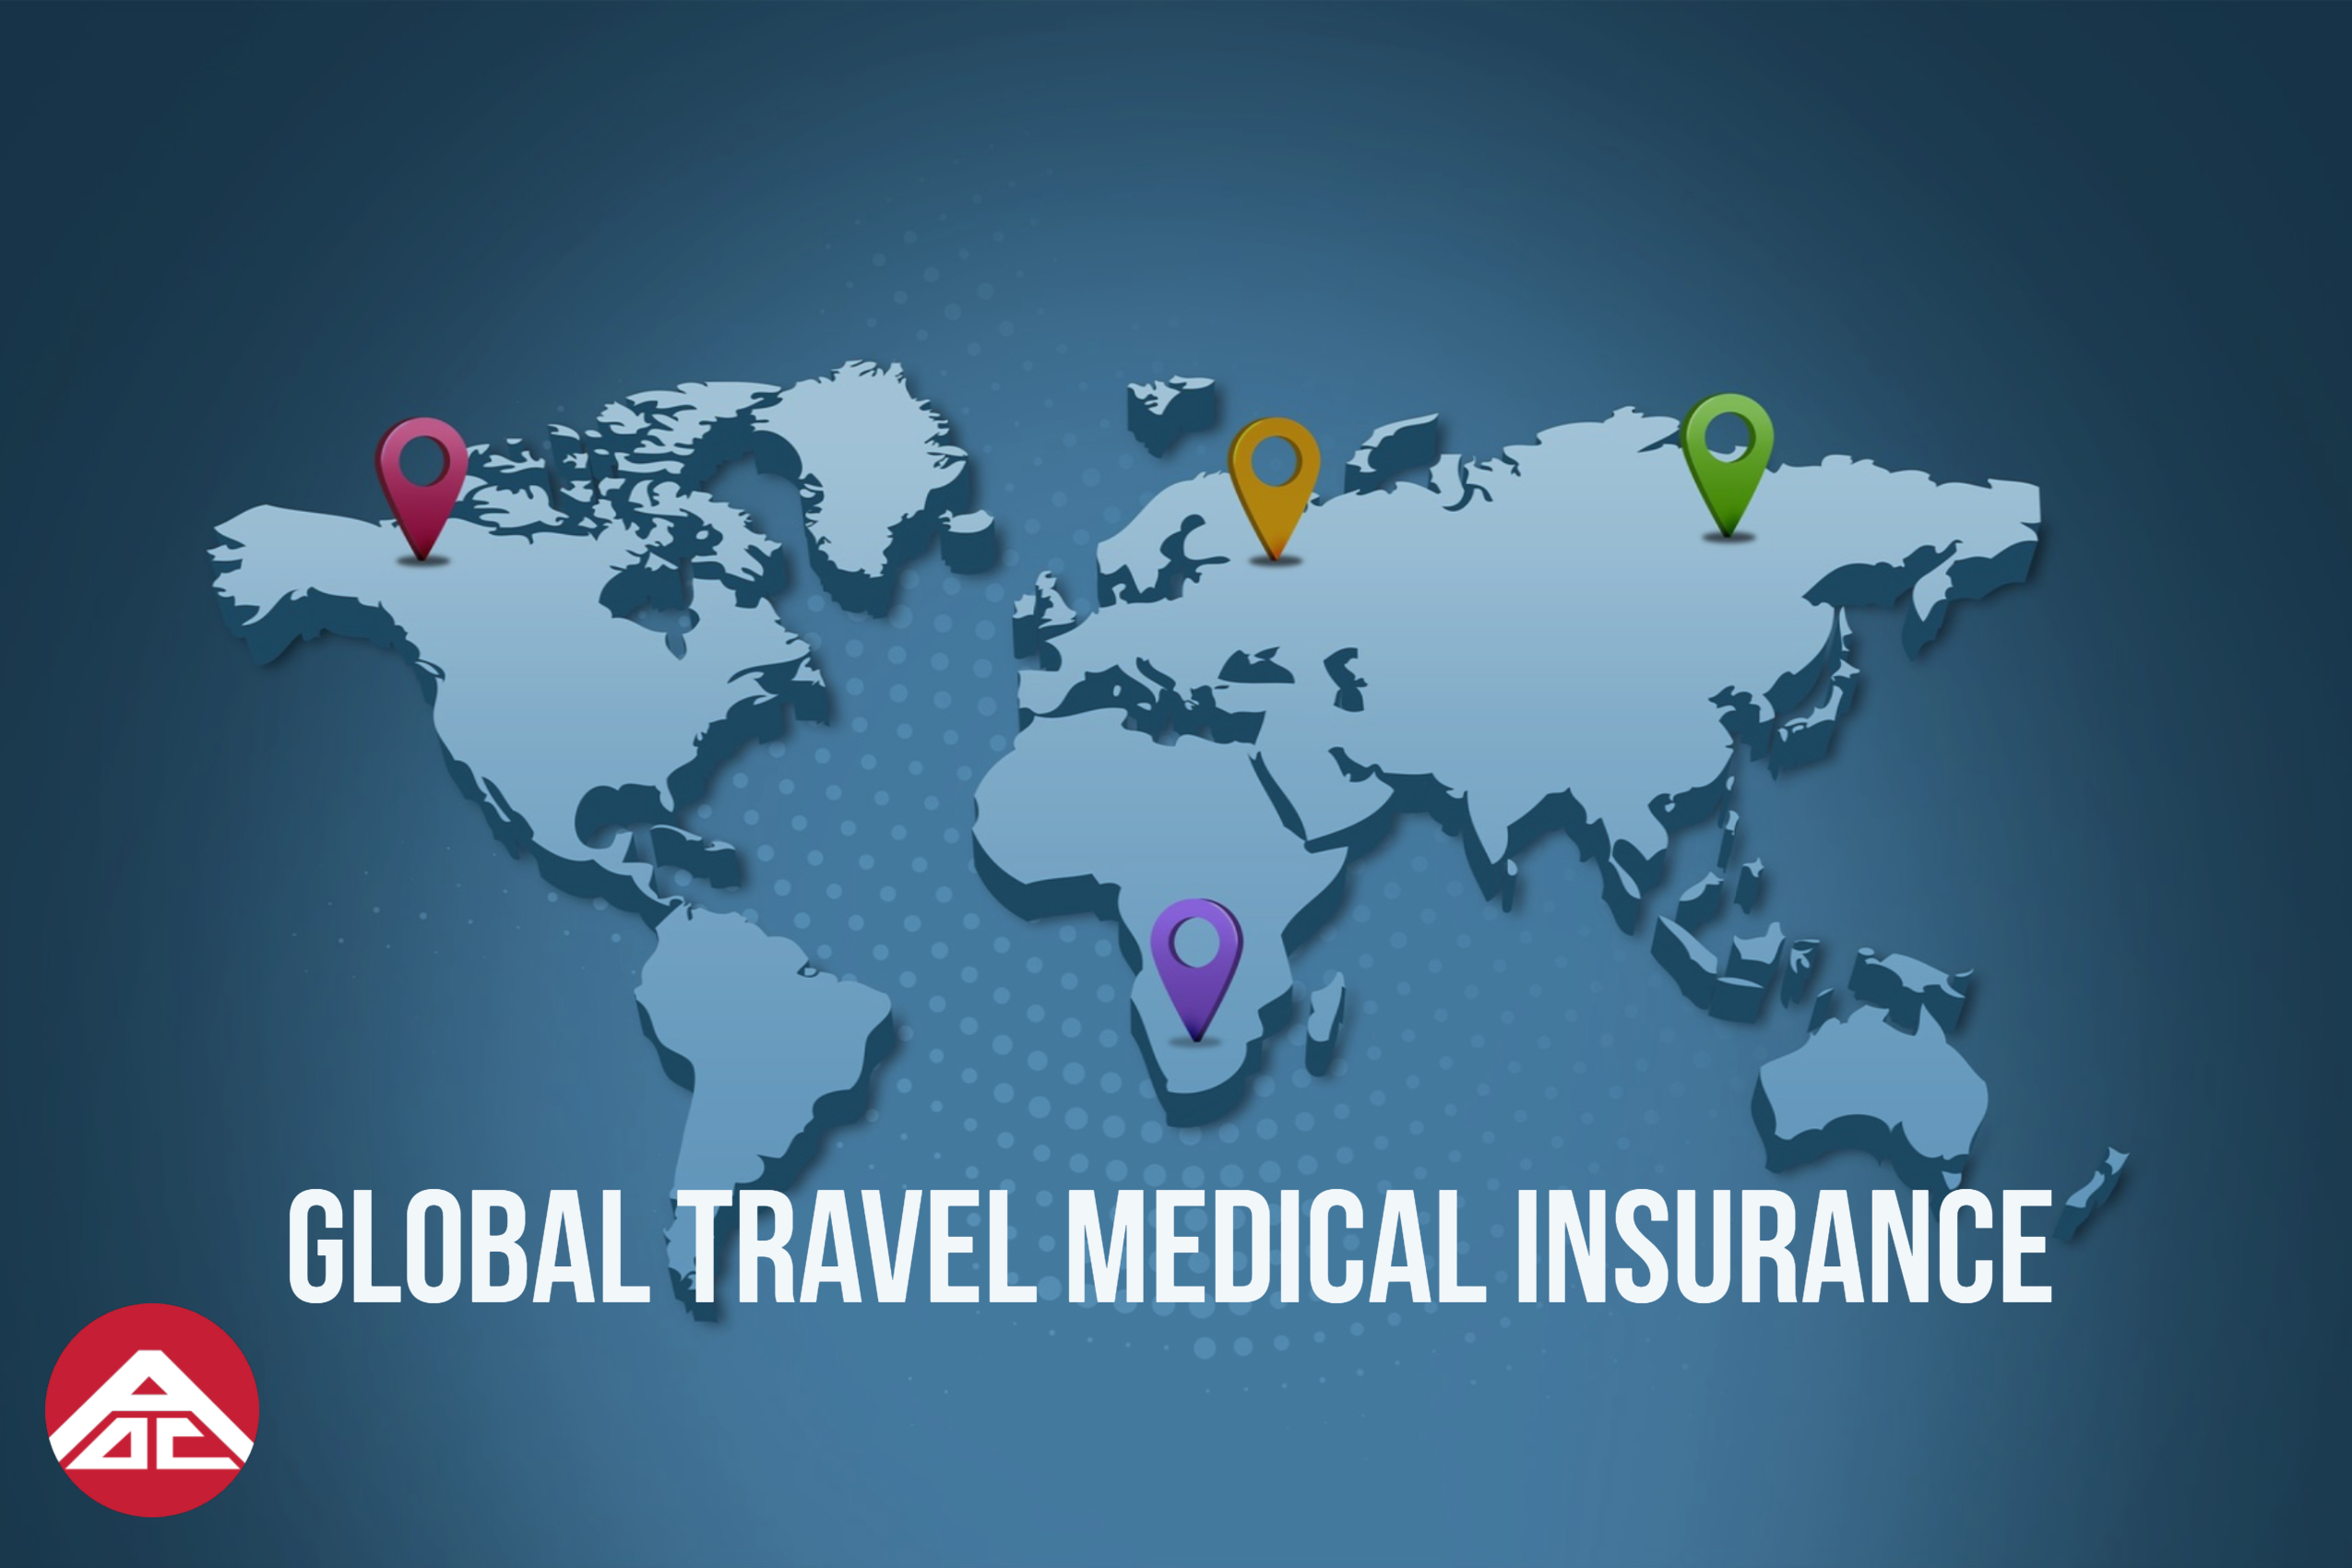 Aoc_insurance_global_travel_medical_insurance.jpg